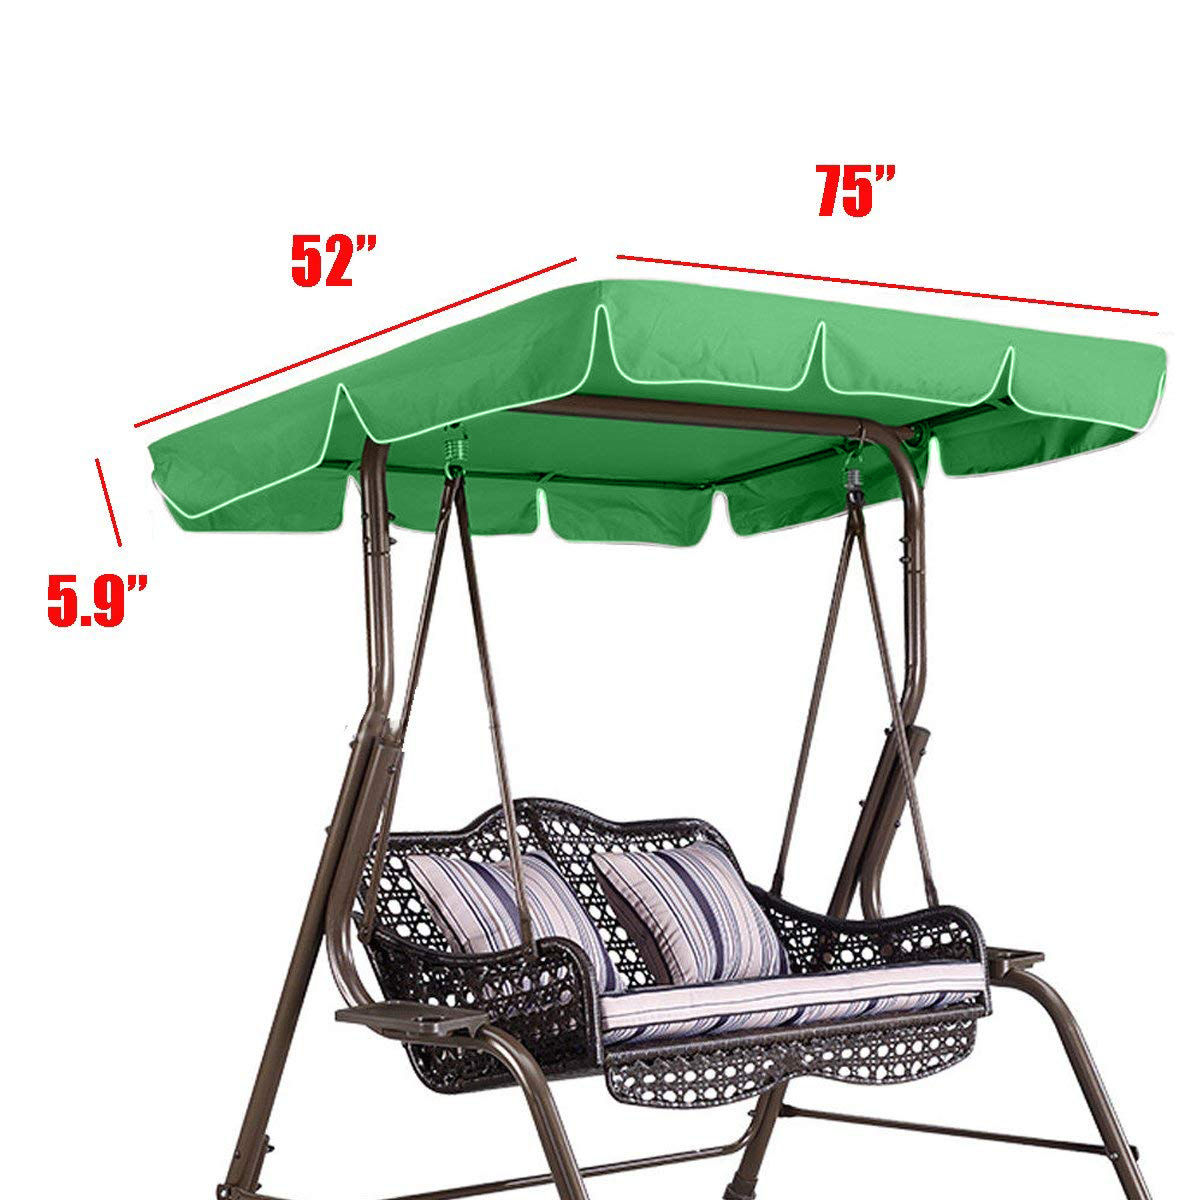 Outdoor Canopy Chair Rattan Wicker Chairs Universal Swing Top Cover Polyester Replacement Indoor For Patio Garden Awning Sun Shade Accessories In Sails Nets From